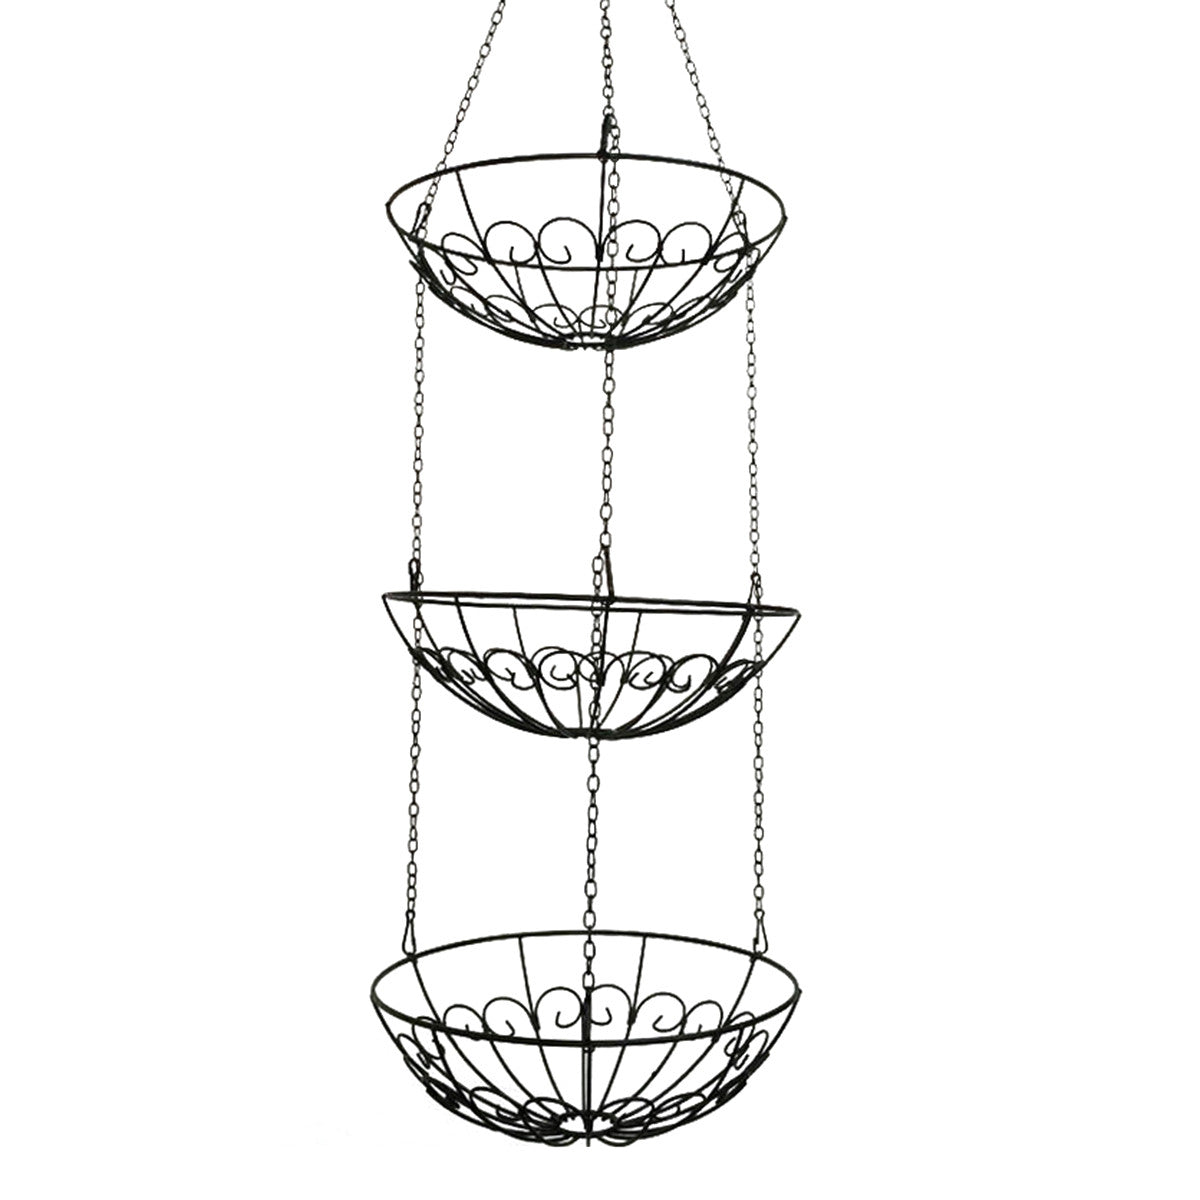 Iron Hanging Storage Basket